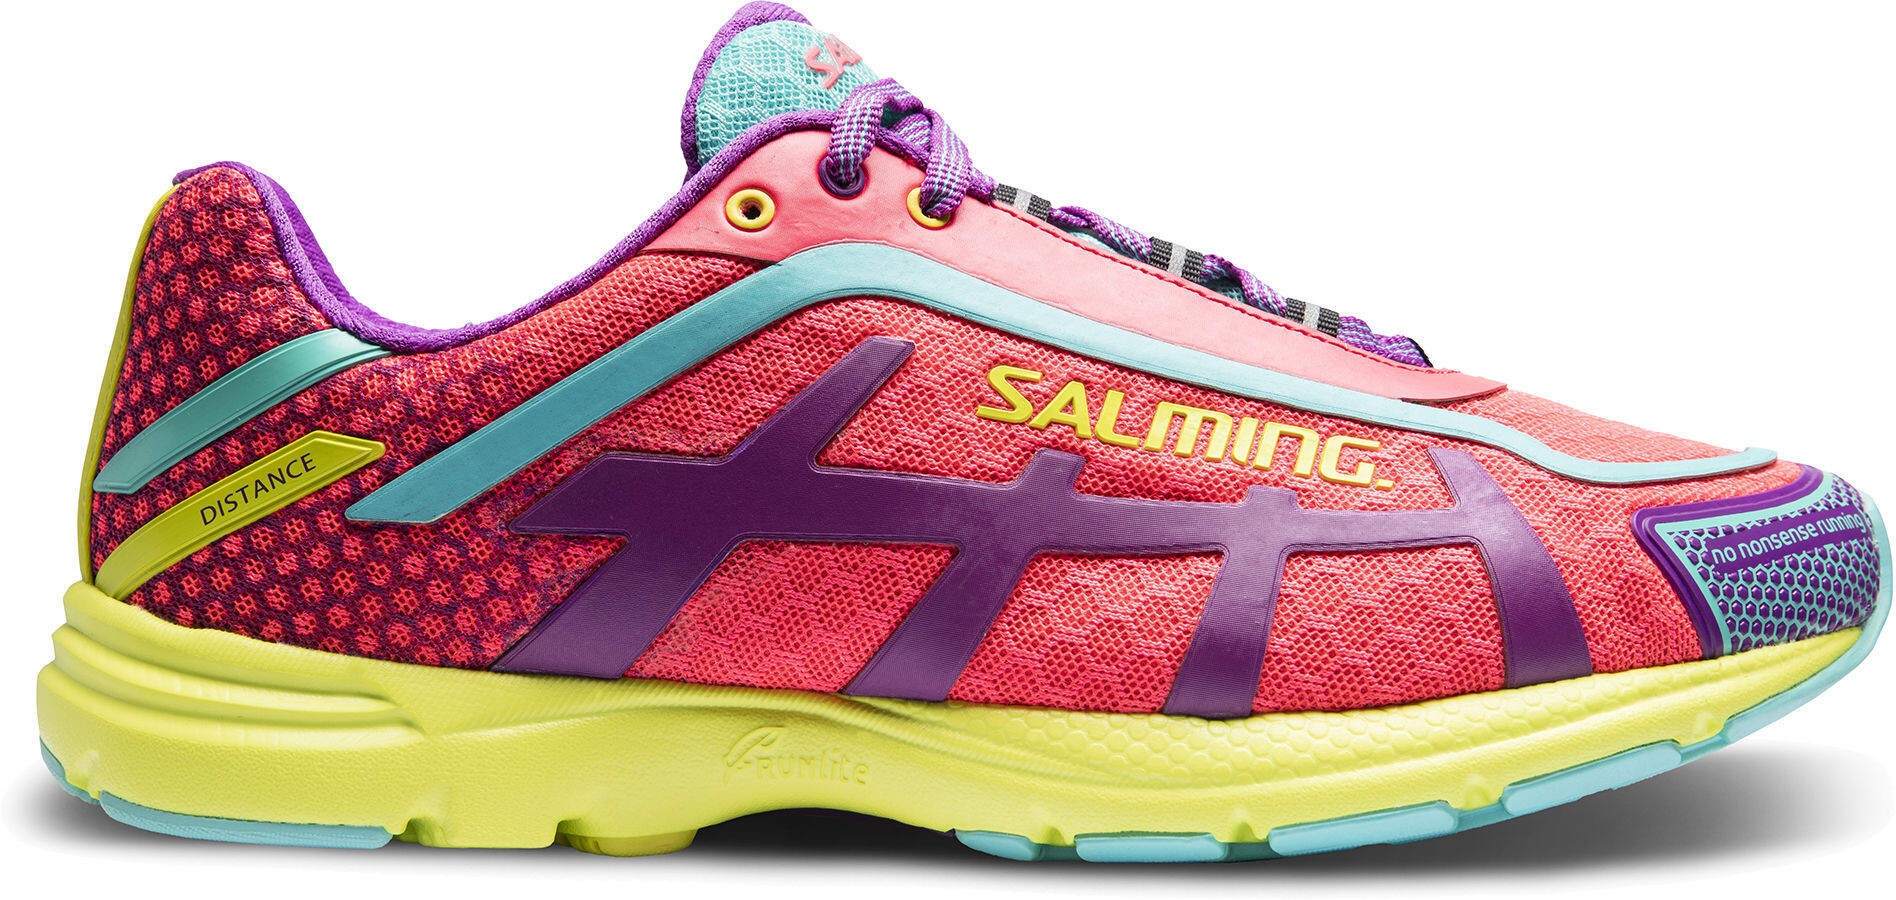 74acbb68b0f Salming W's Distance D5 Shoes Diva Pink - addnature.com